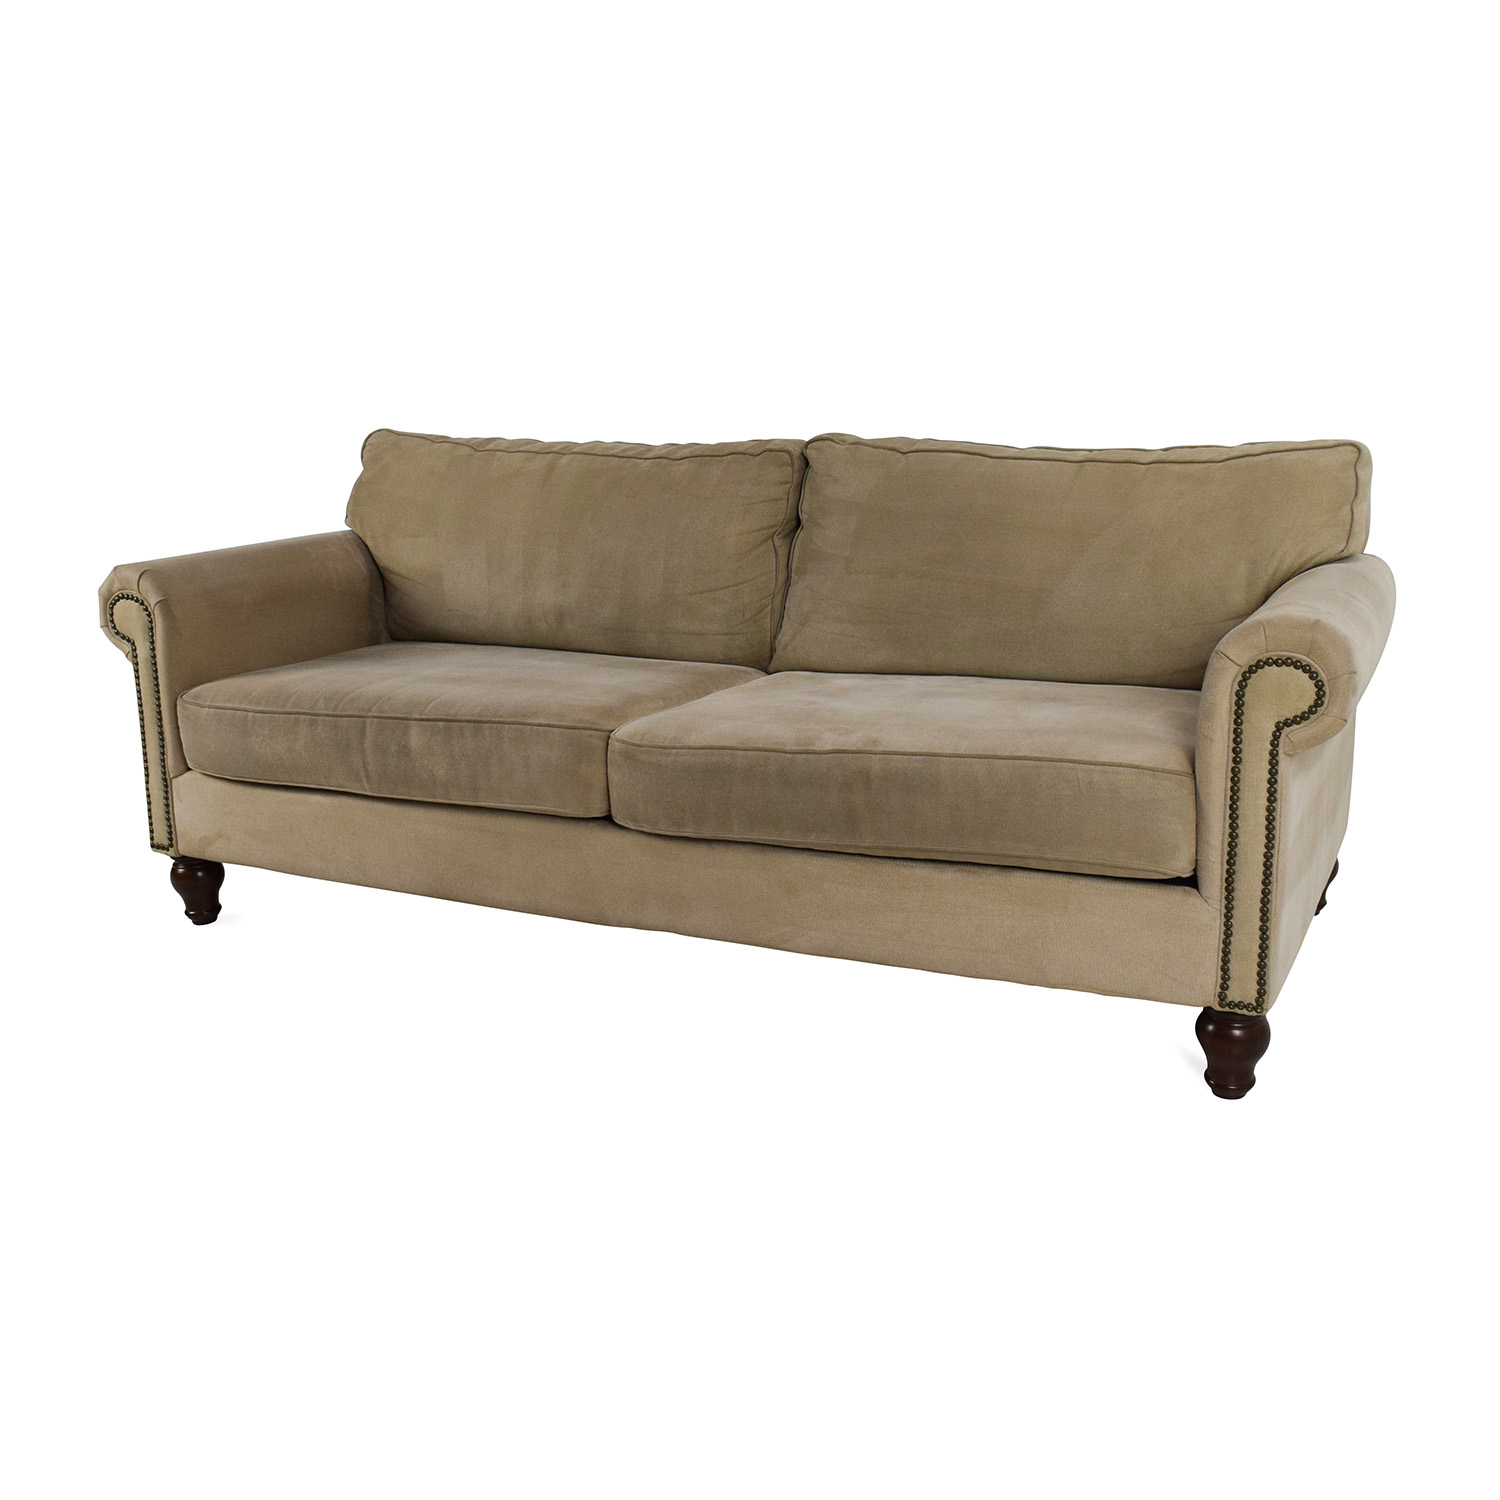 Pier one alton sleeper sofa for Sofa 1 80 breit